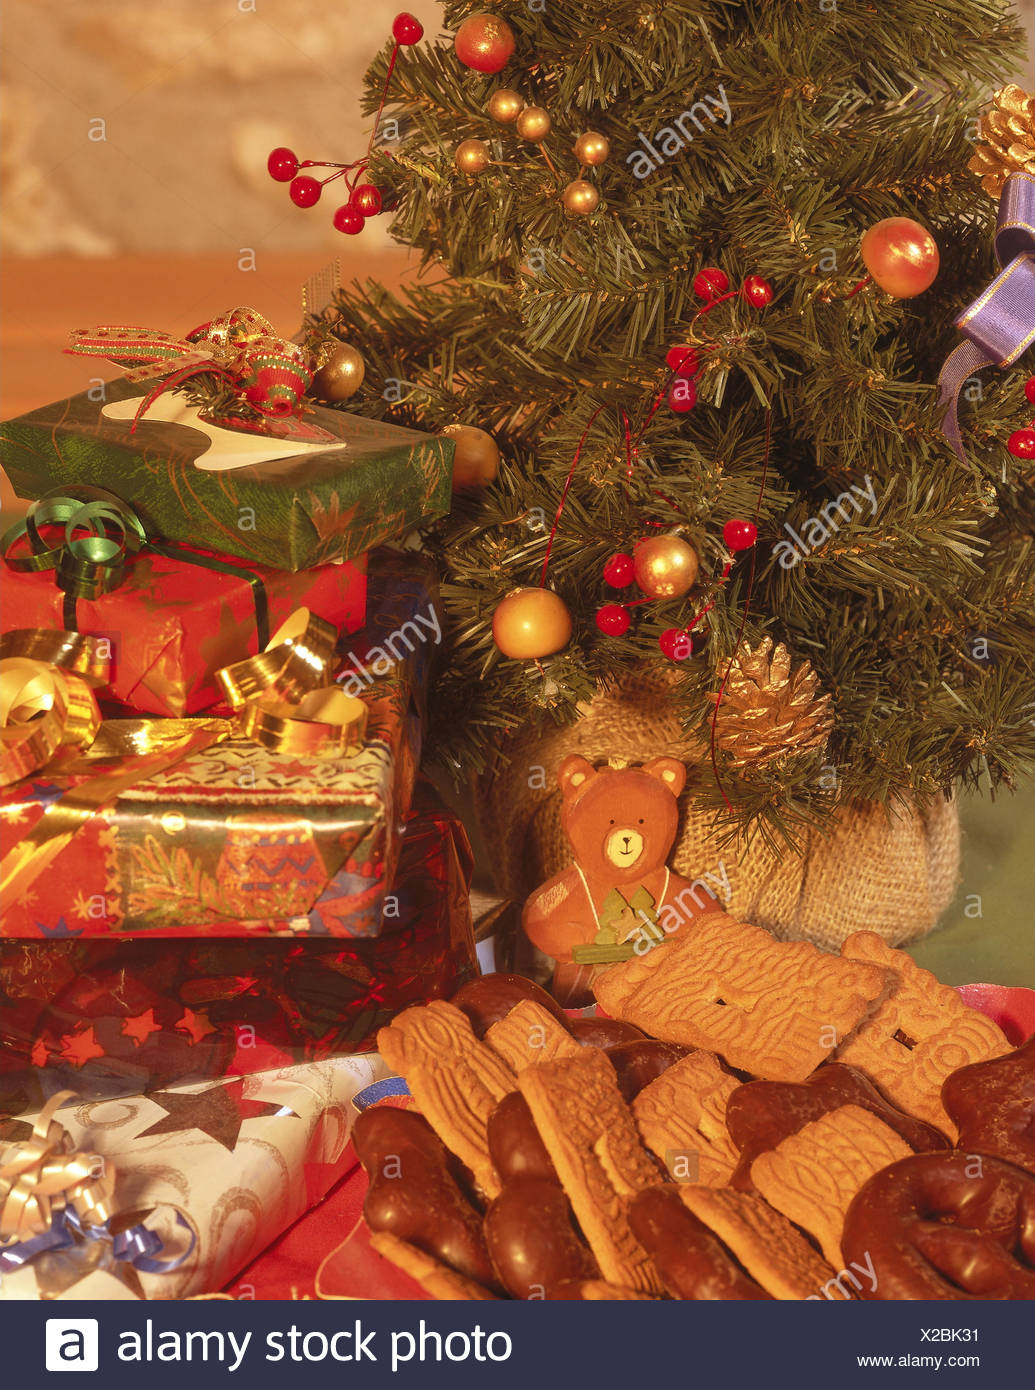 Christmas tree, Christmas presents, plates, biscuits, curled ...